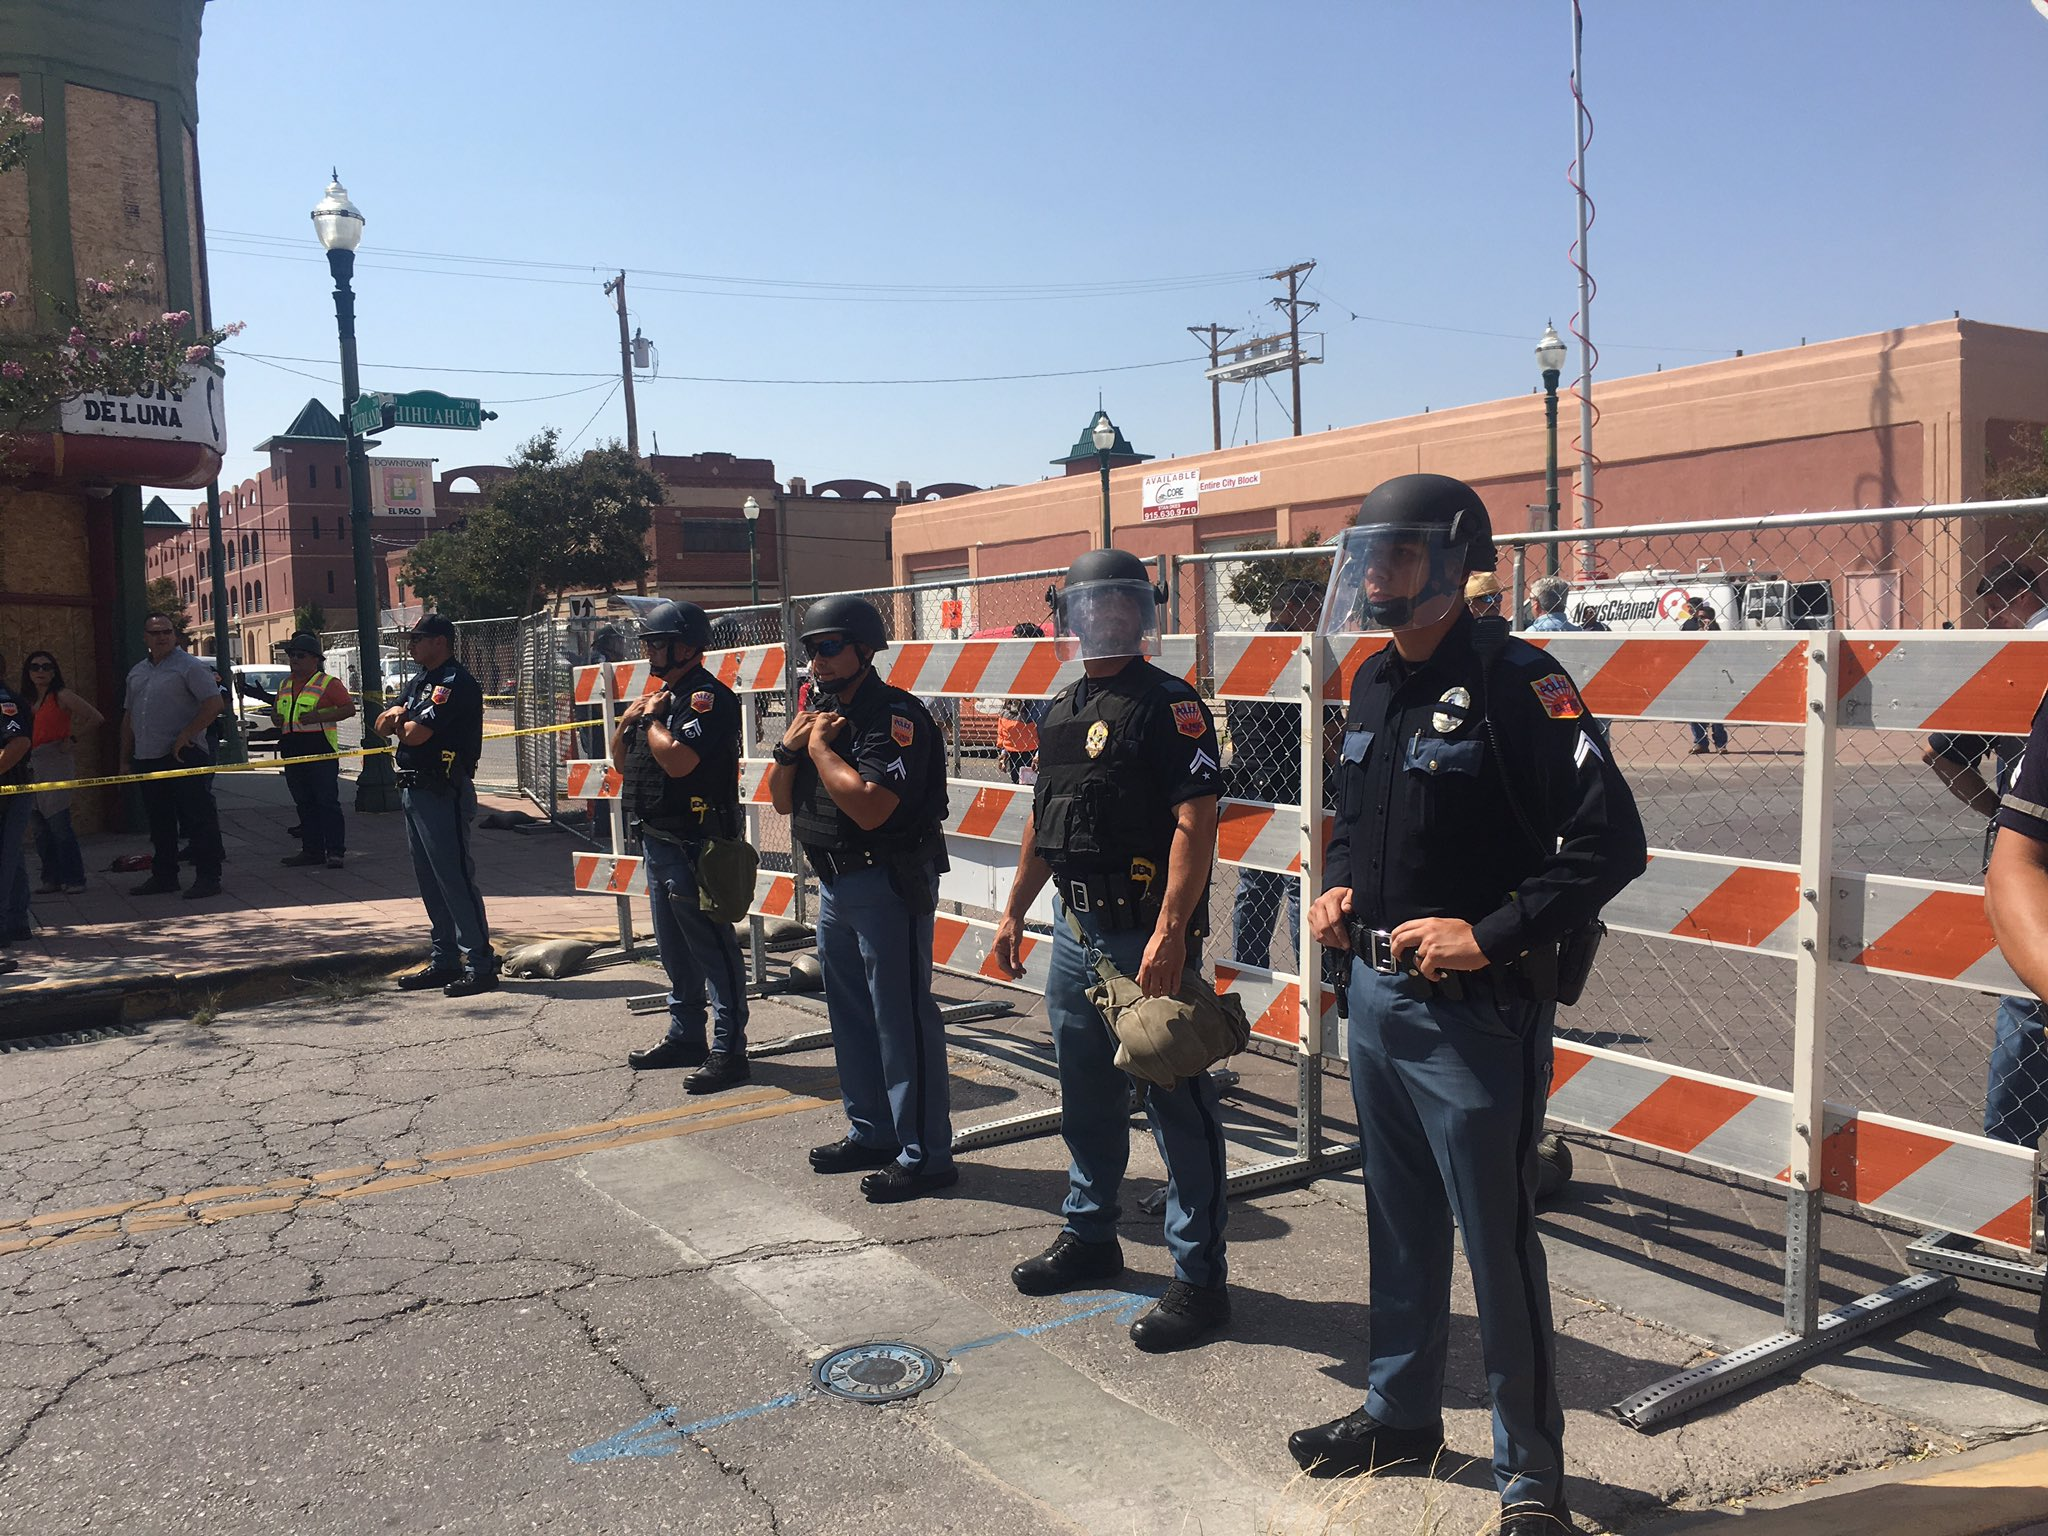 El Paso Police stood in partial riot gear during a protest in the Duranguito neighborhood. Photo: KFOX14 / CBS4